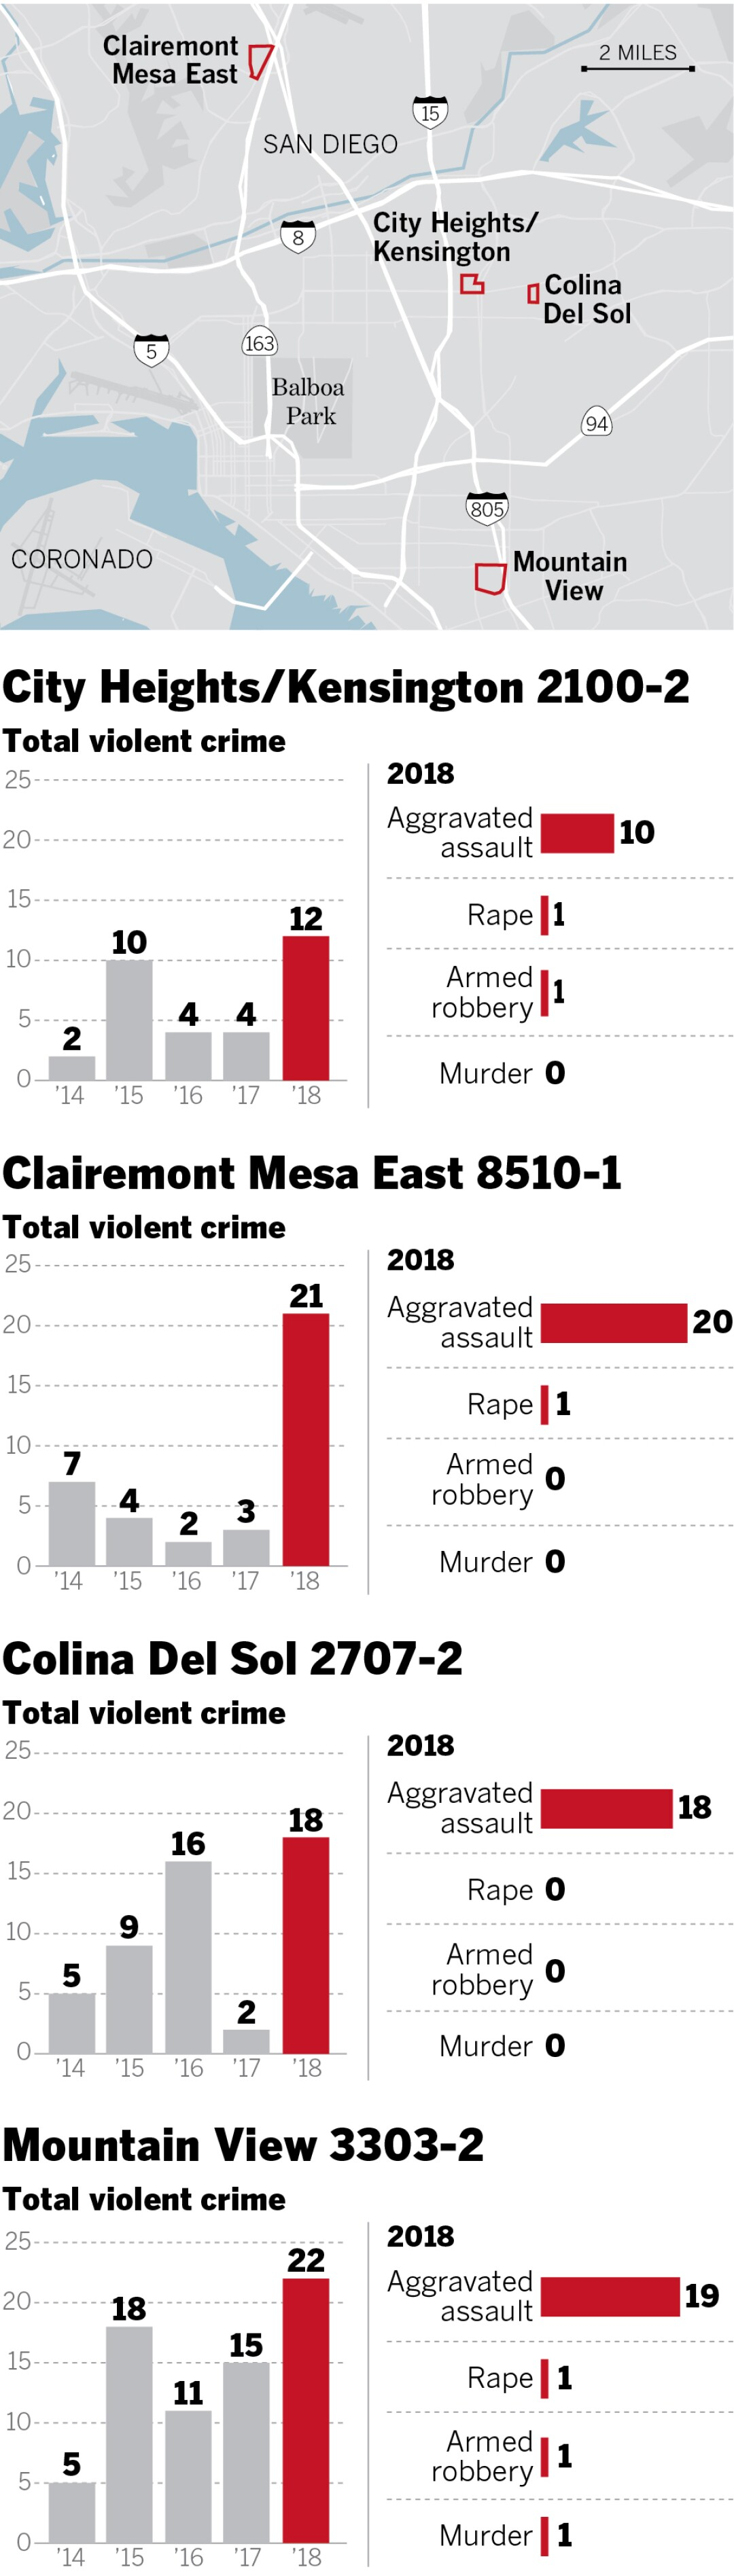 sd-ne-g-neighborhood-crime-june2019-online.jpg